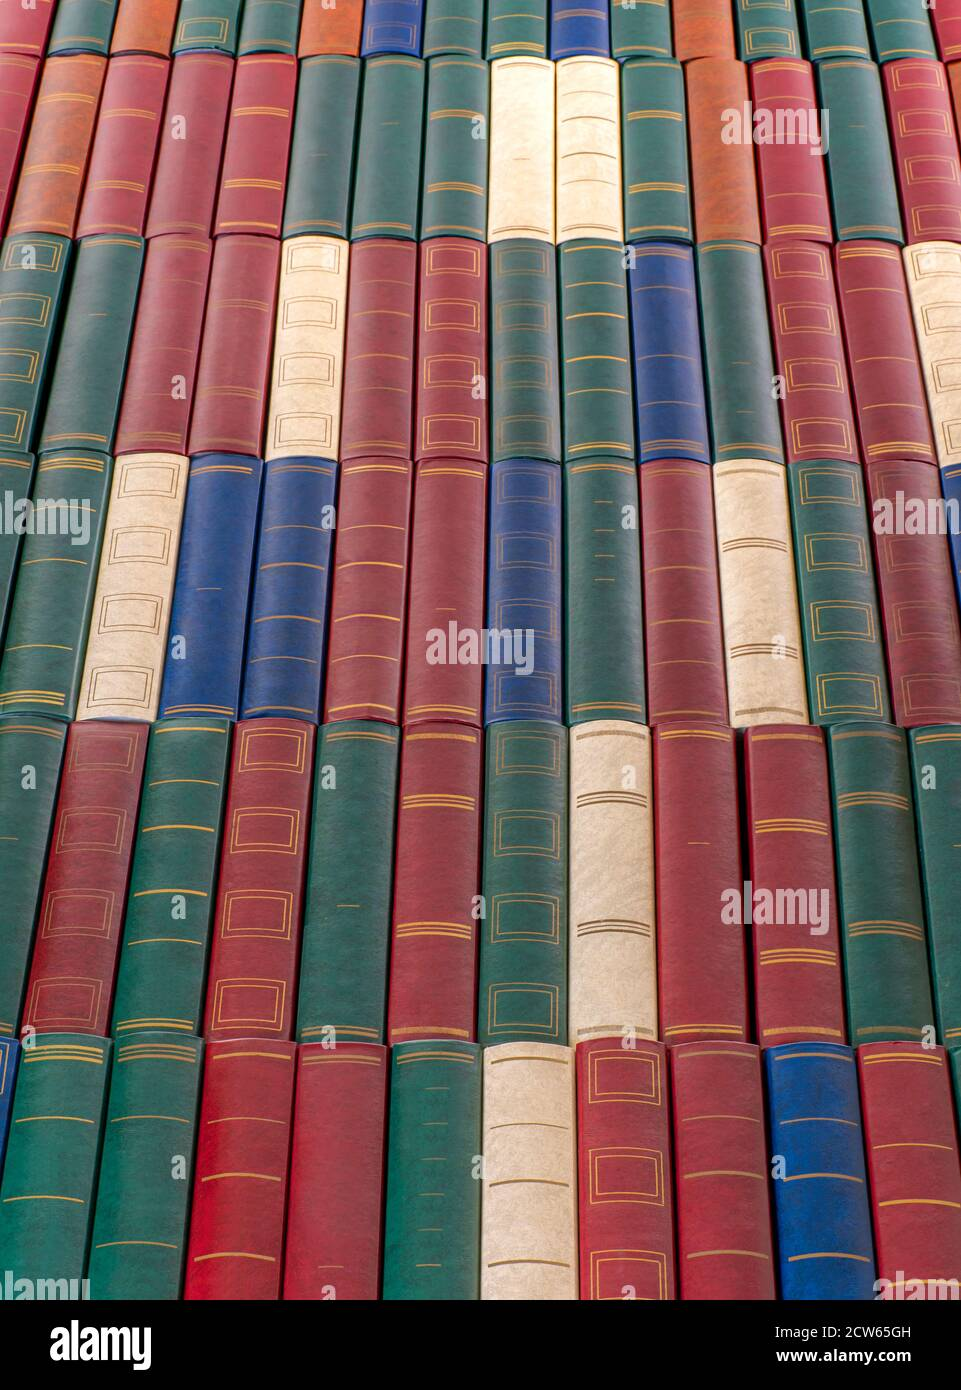 A lot of books. Education ang knowledge concept. Vertical photo. Stock Photo